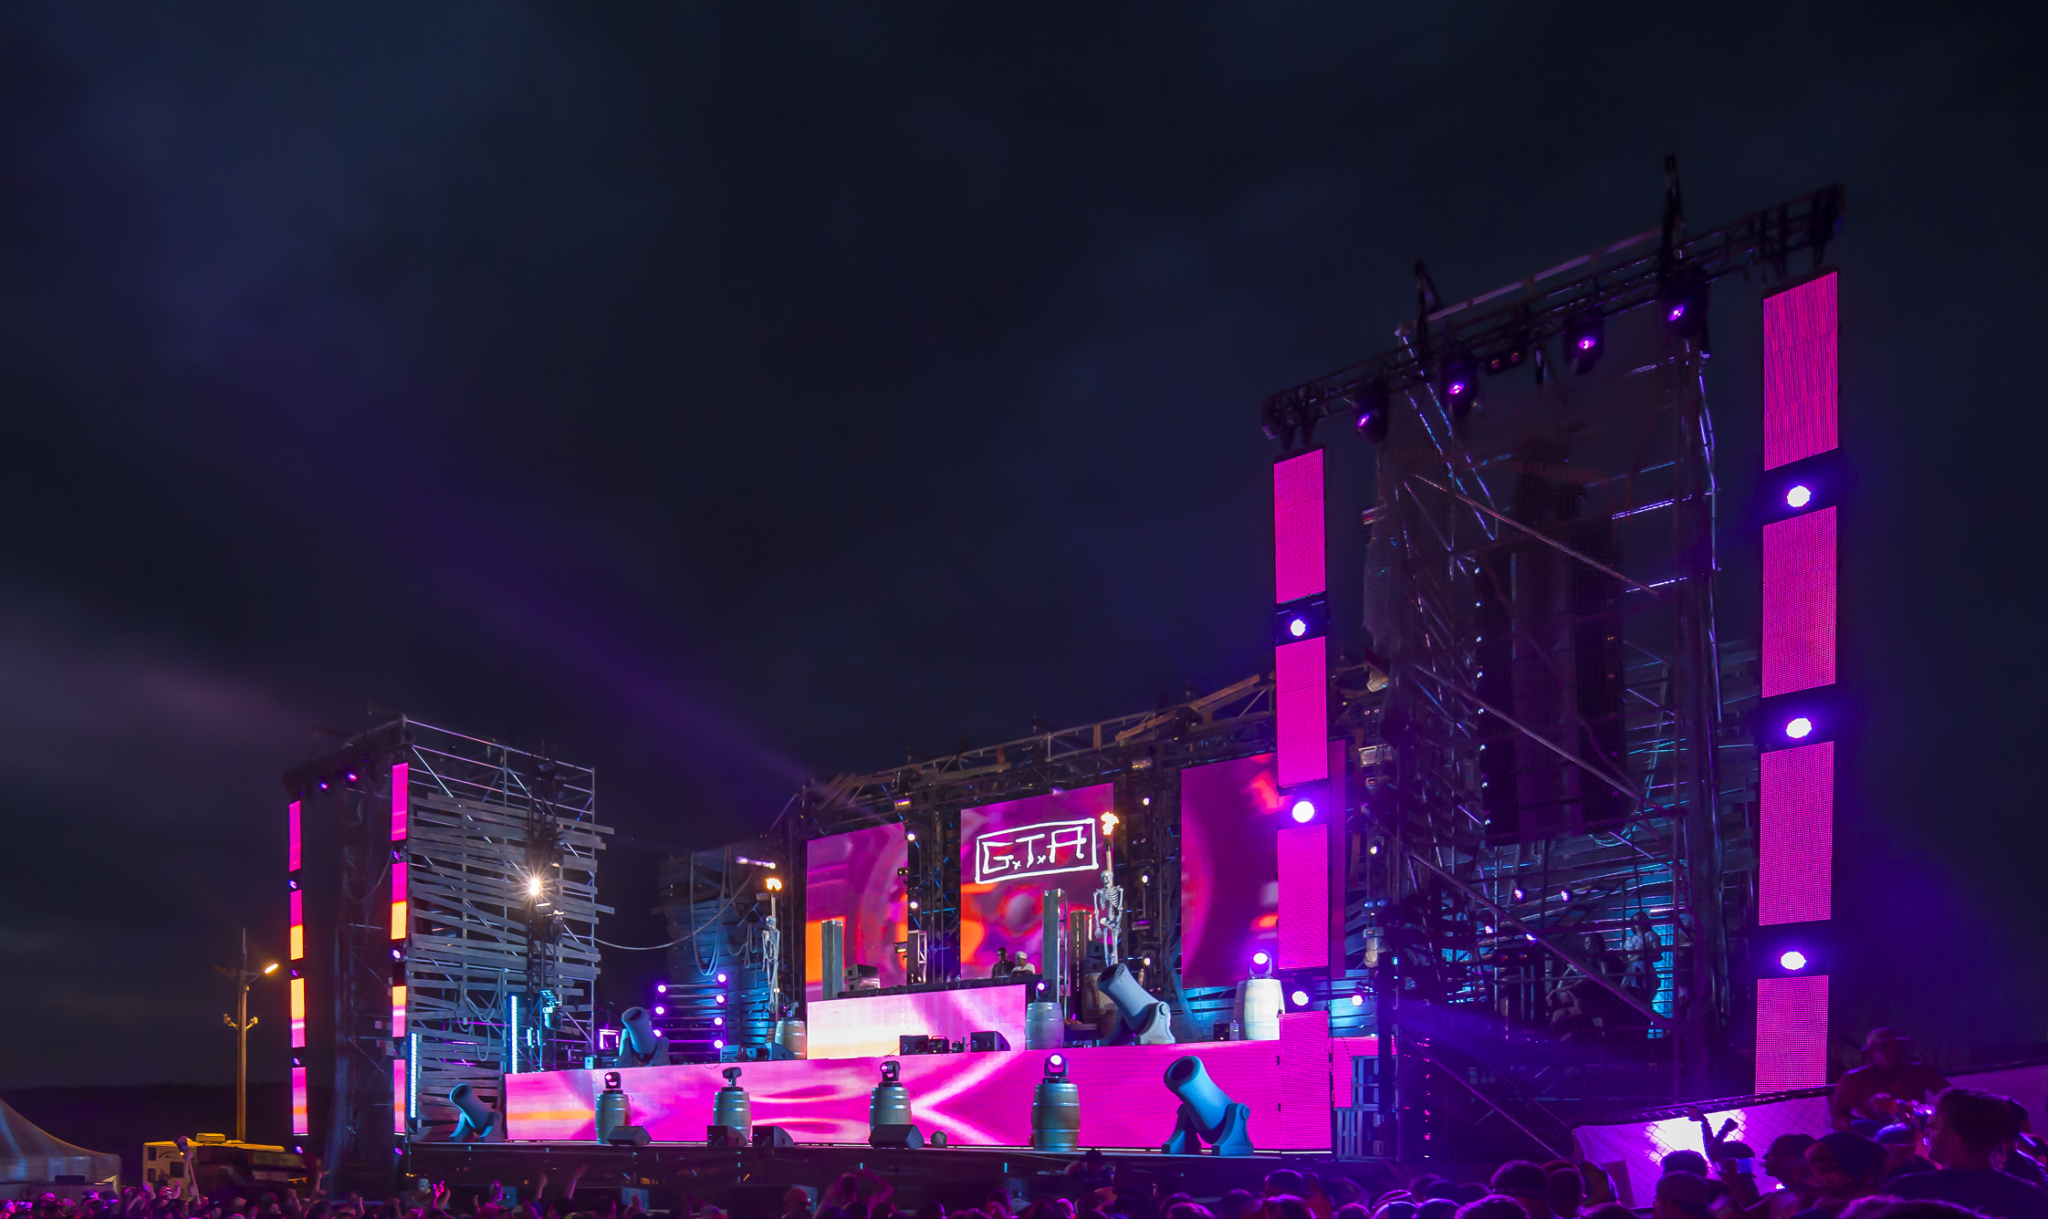 Paradiso 2015 - Wreckage Stage & Seattle Concert Lighting - R90 Lighting azcodes.com